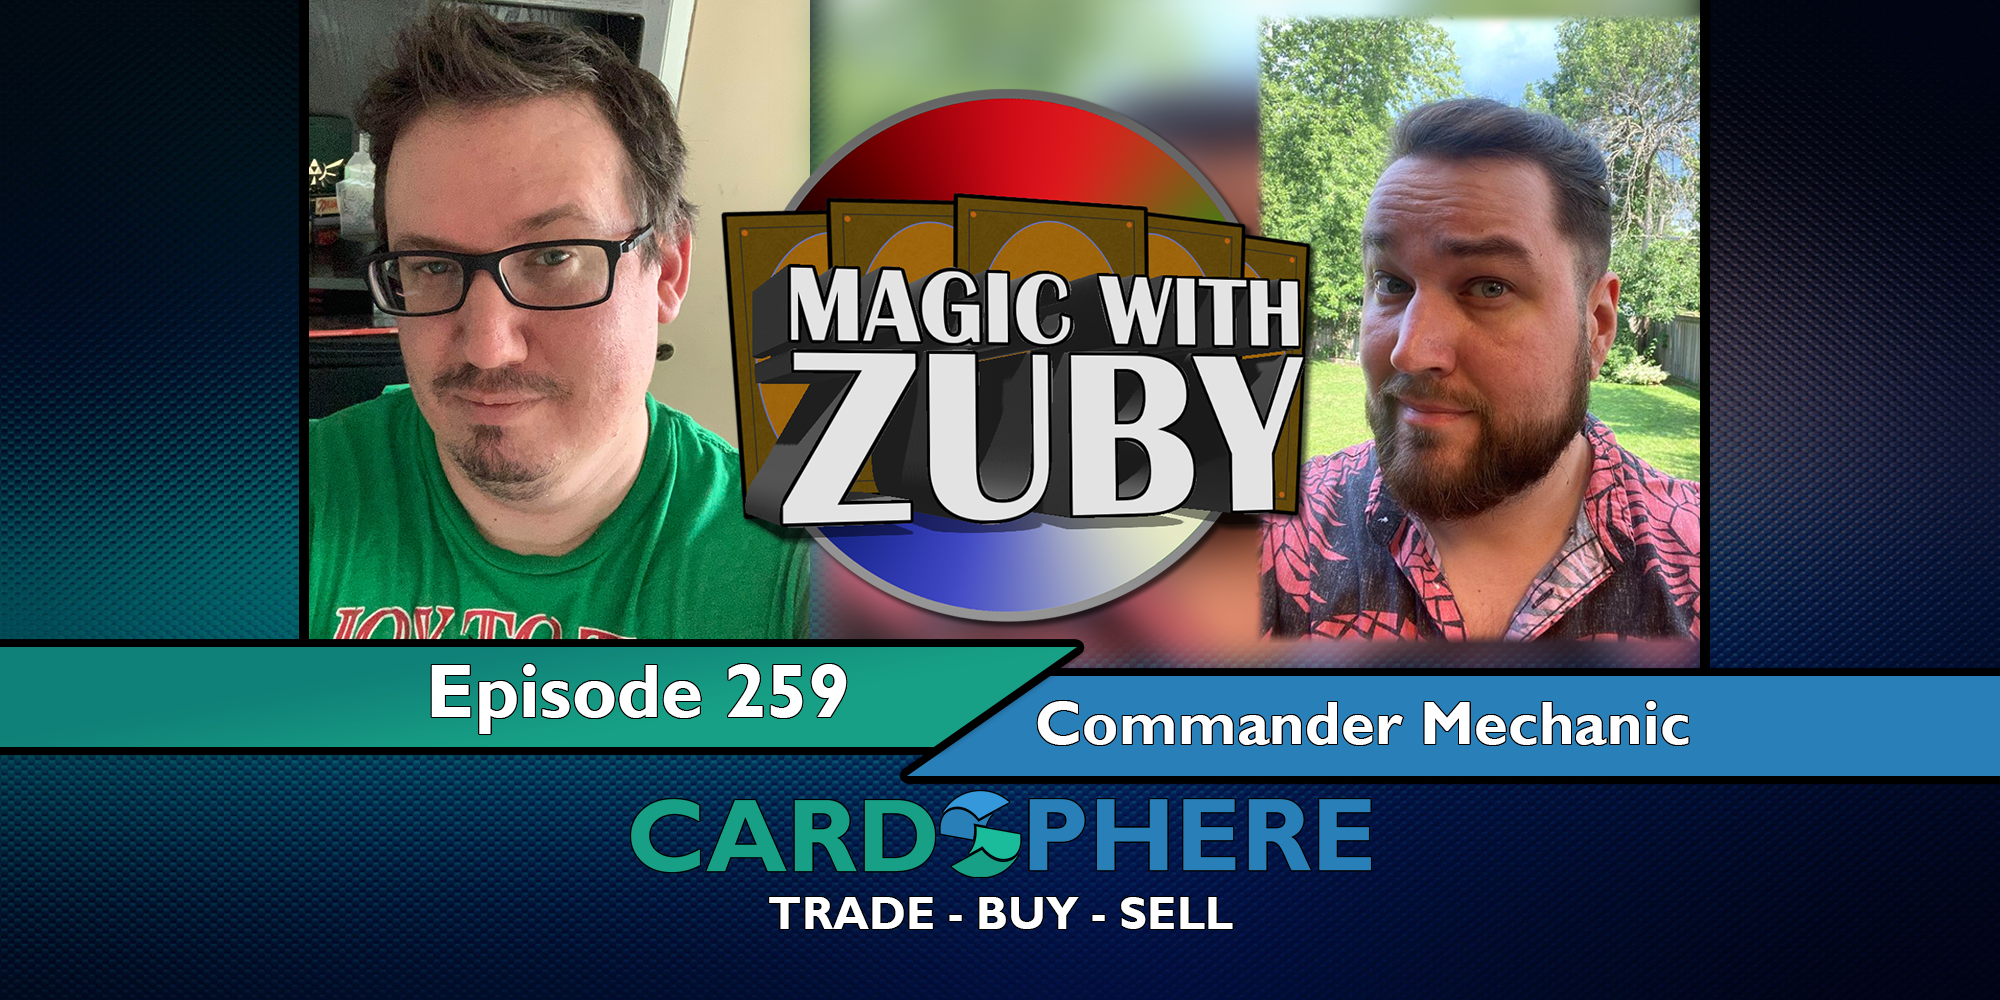 Magic With Zuby Episode 259 - Chris, YOUR Commander Mechanic